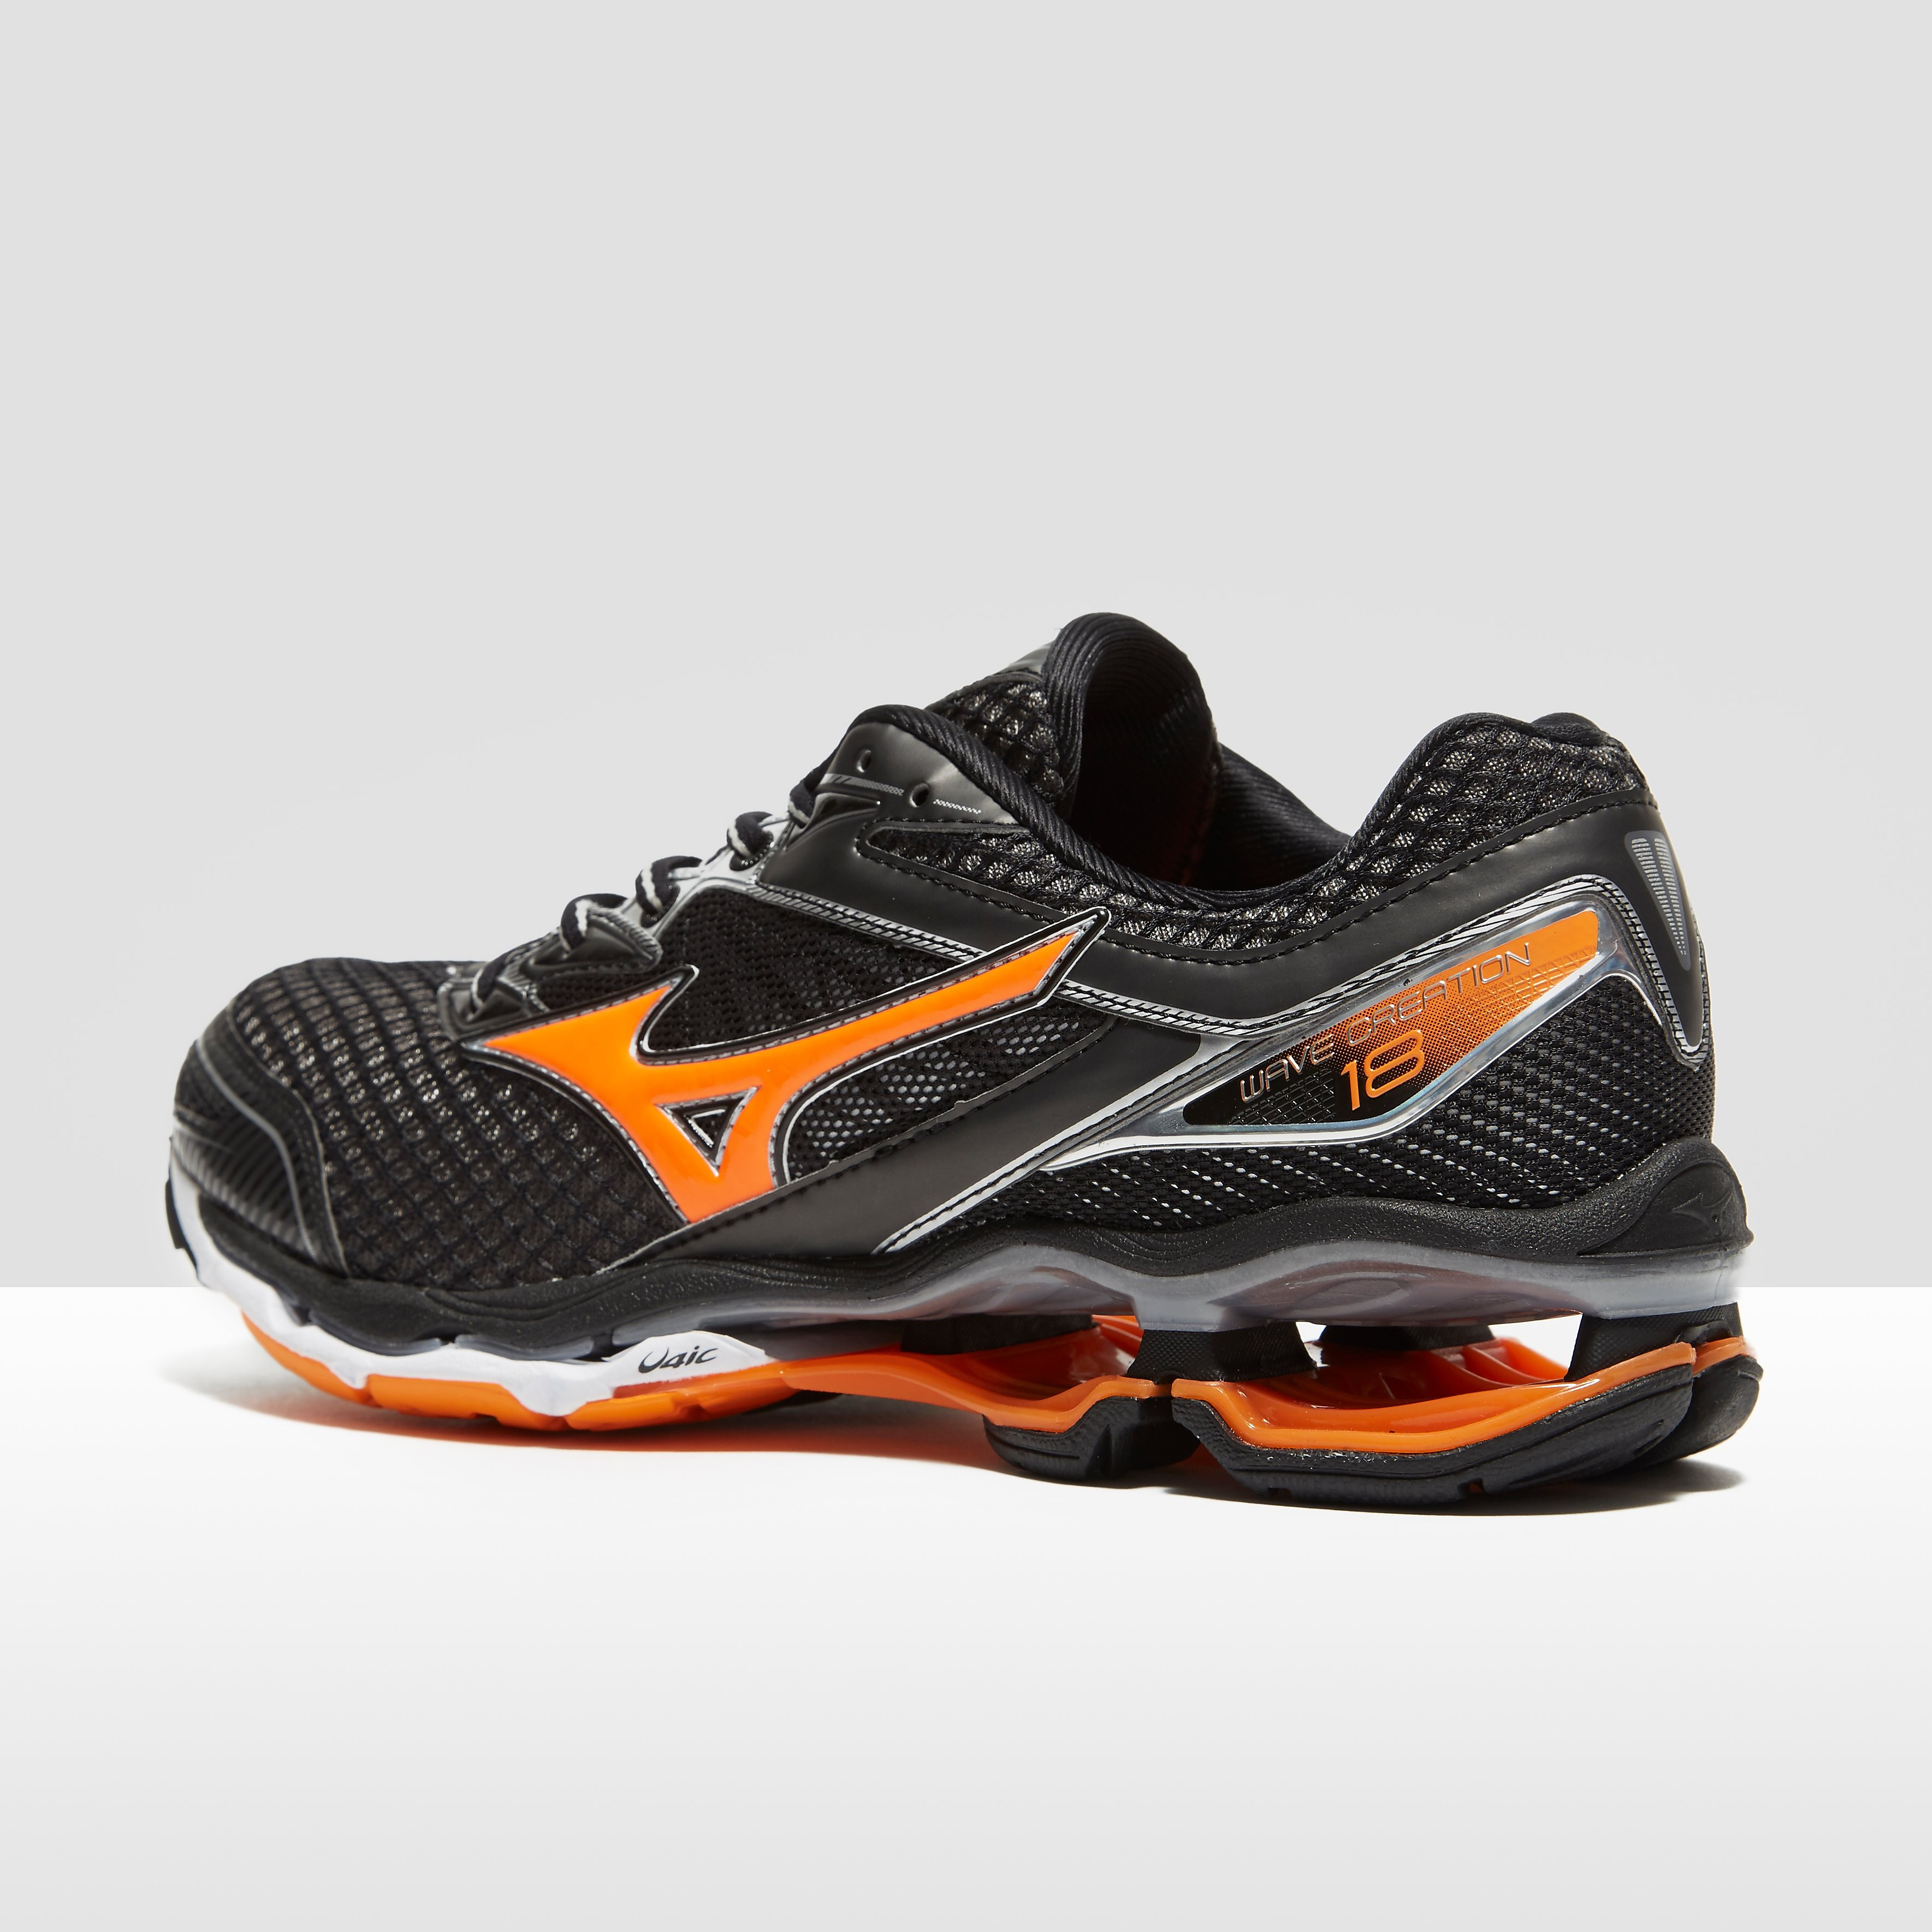 Mizuno Wave Creation 18 Men's Running Shoes